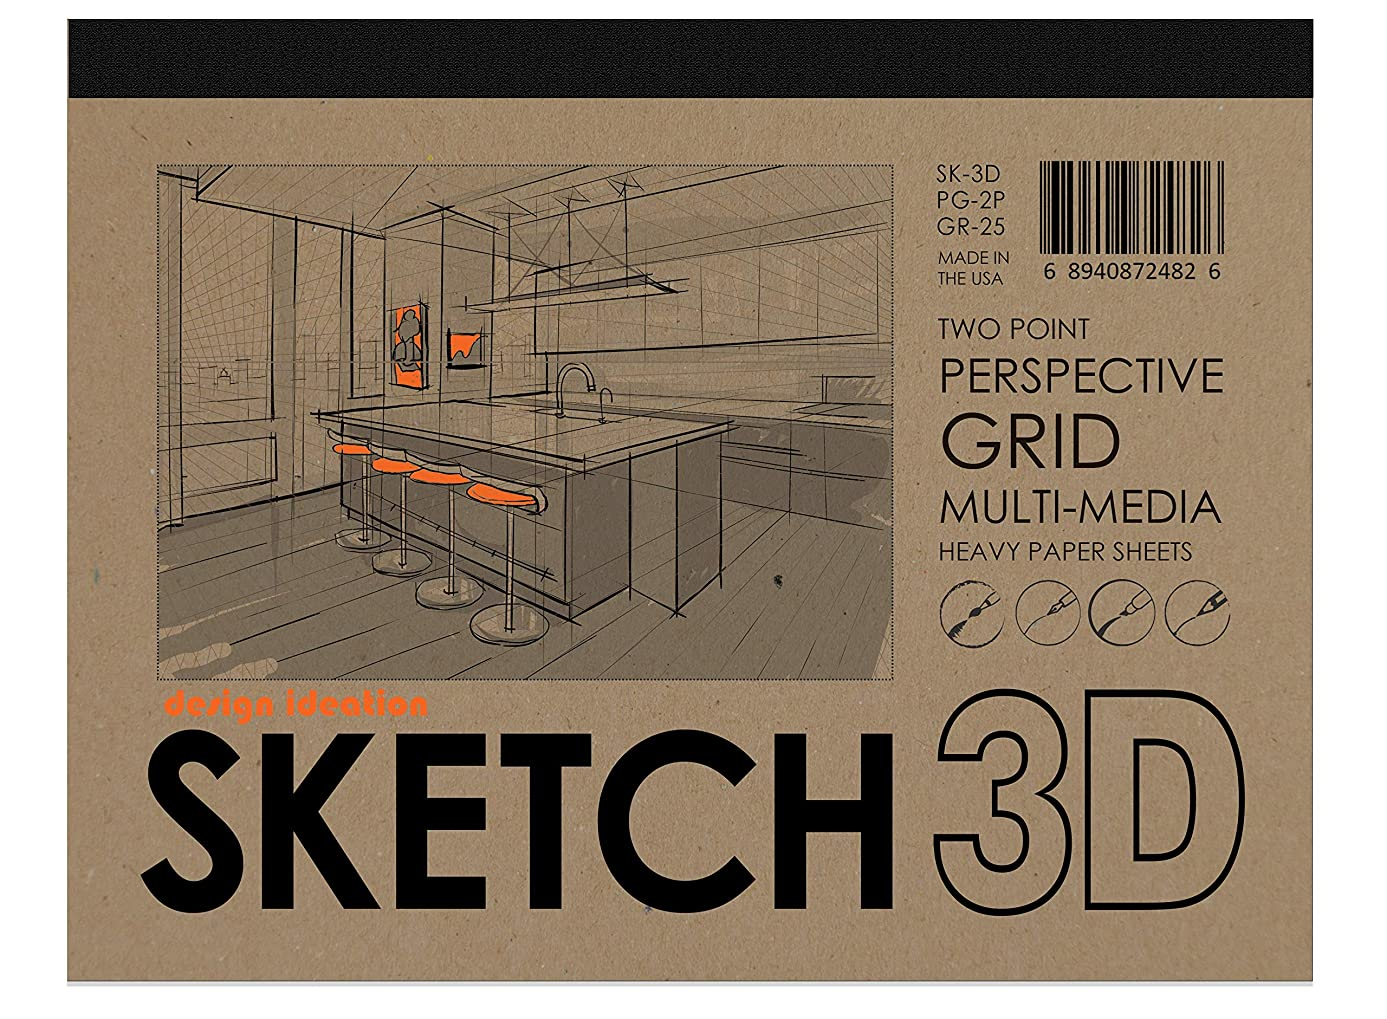 Design Ideation SKETCH 3D Multi-Media Perspective Grid Paper for Pencil, Ink, Marker and Watercolor Paints. Great for Art, Design and Education. Two Point Perspective Grid.